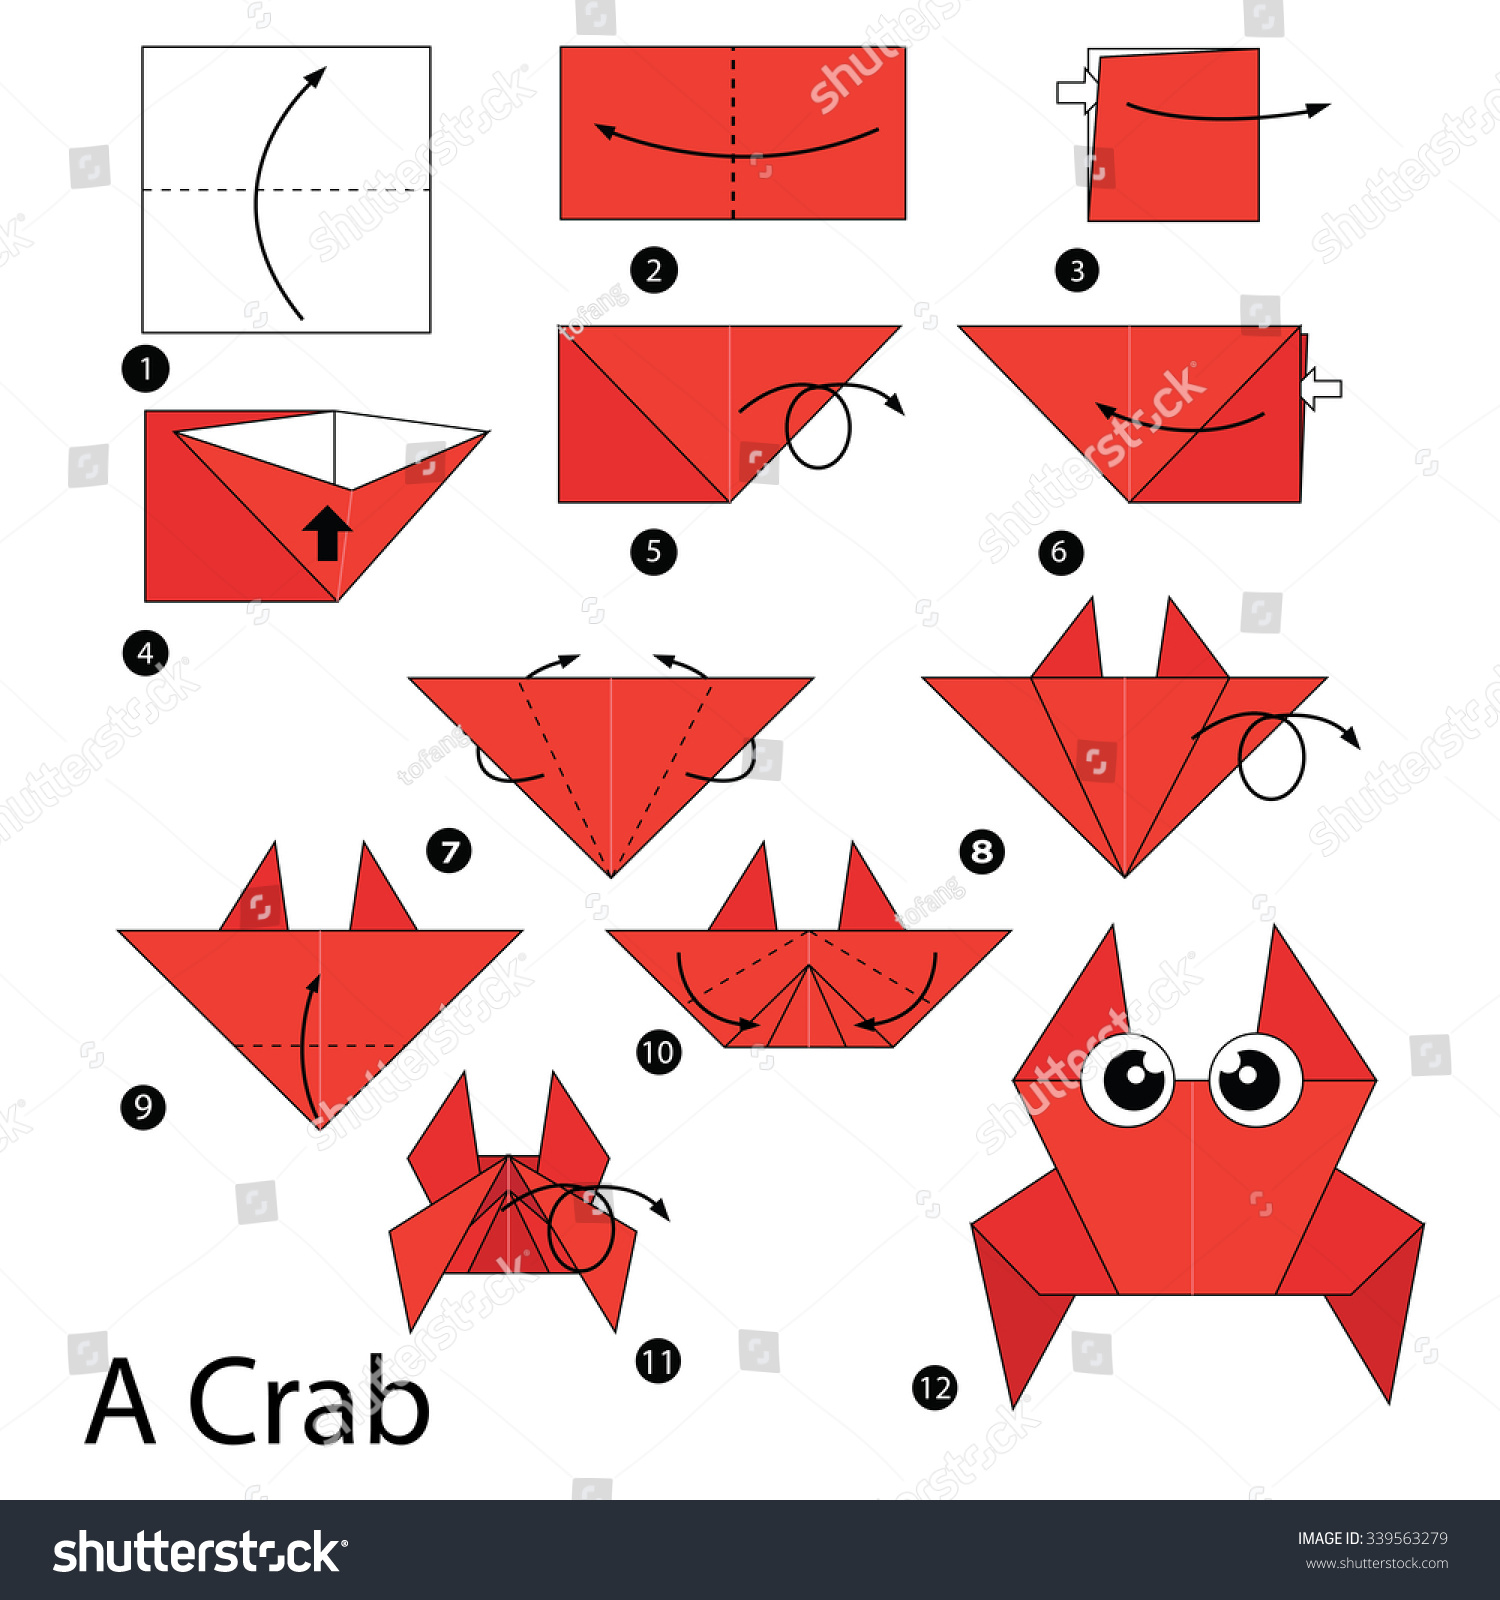 Step By Step Instructions Clipart | www.pixshark.com ...